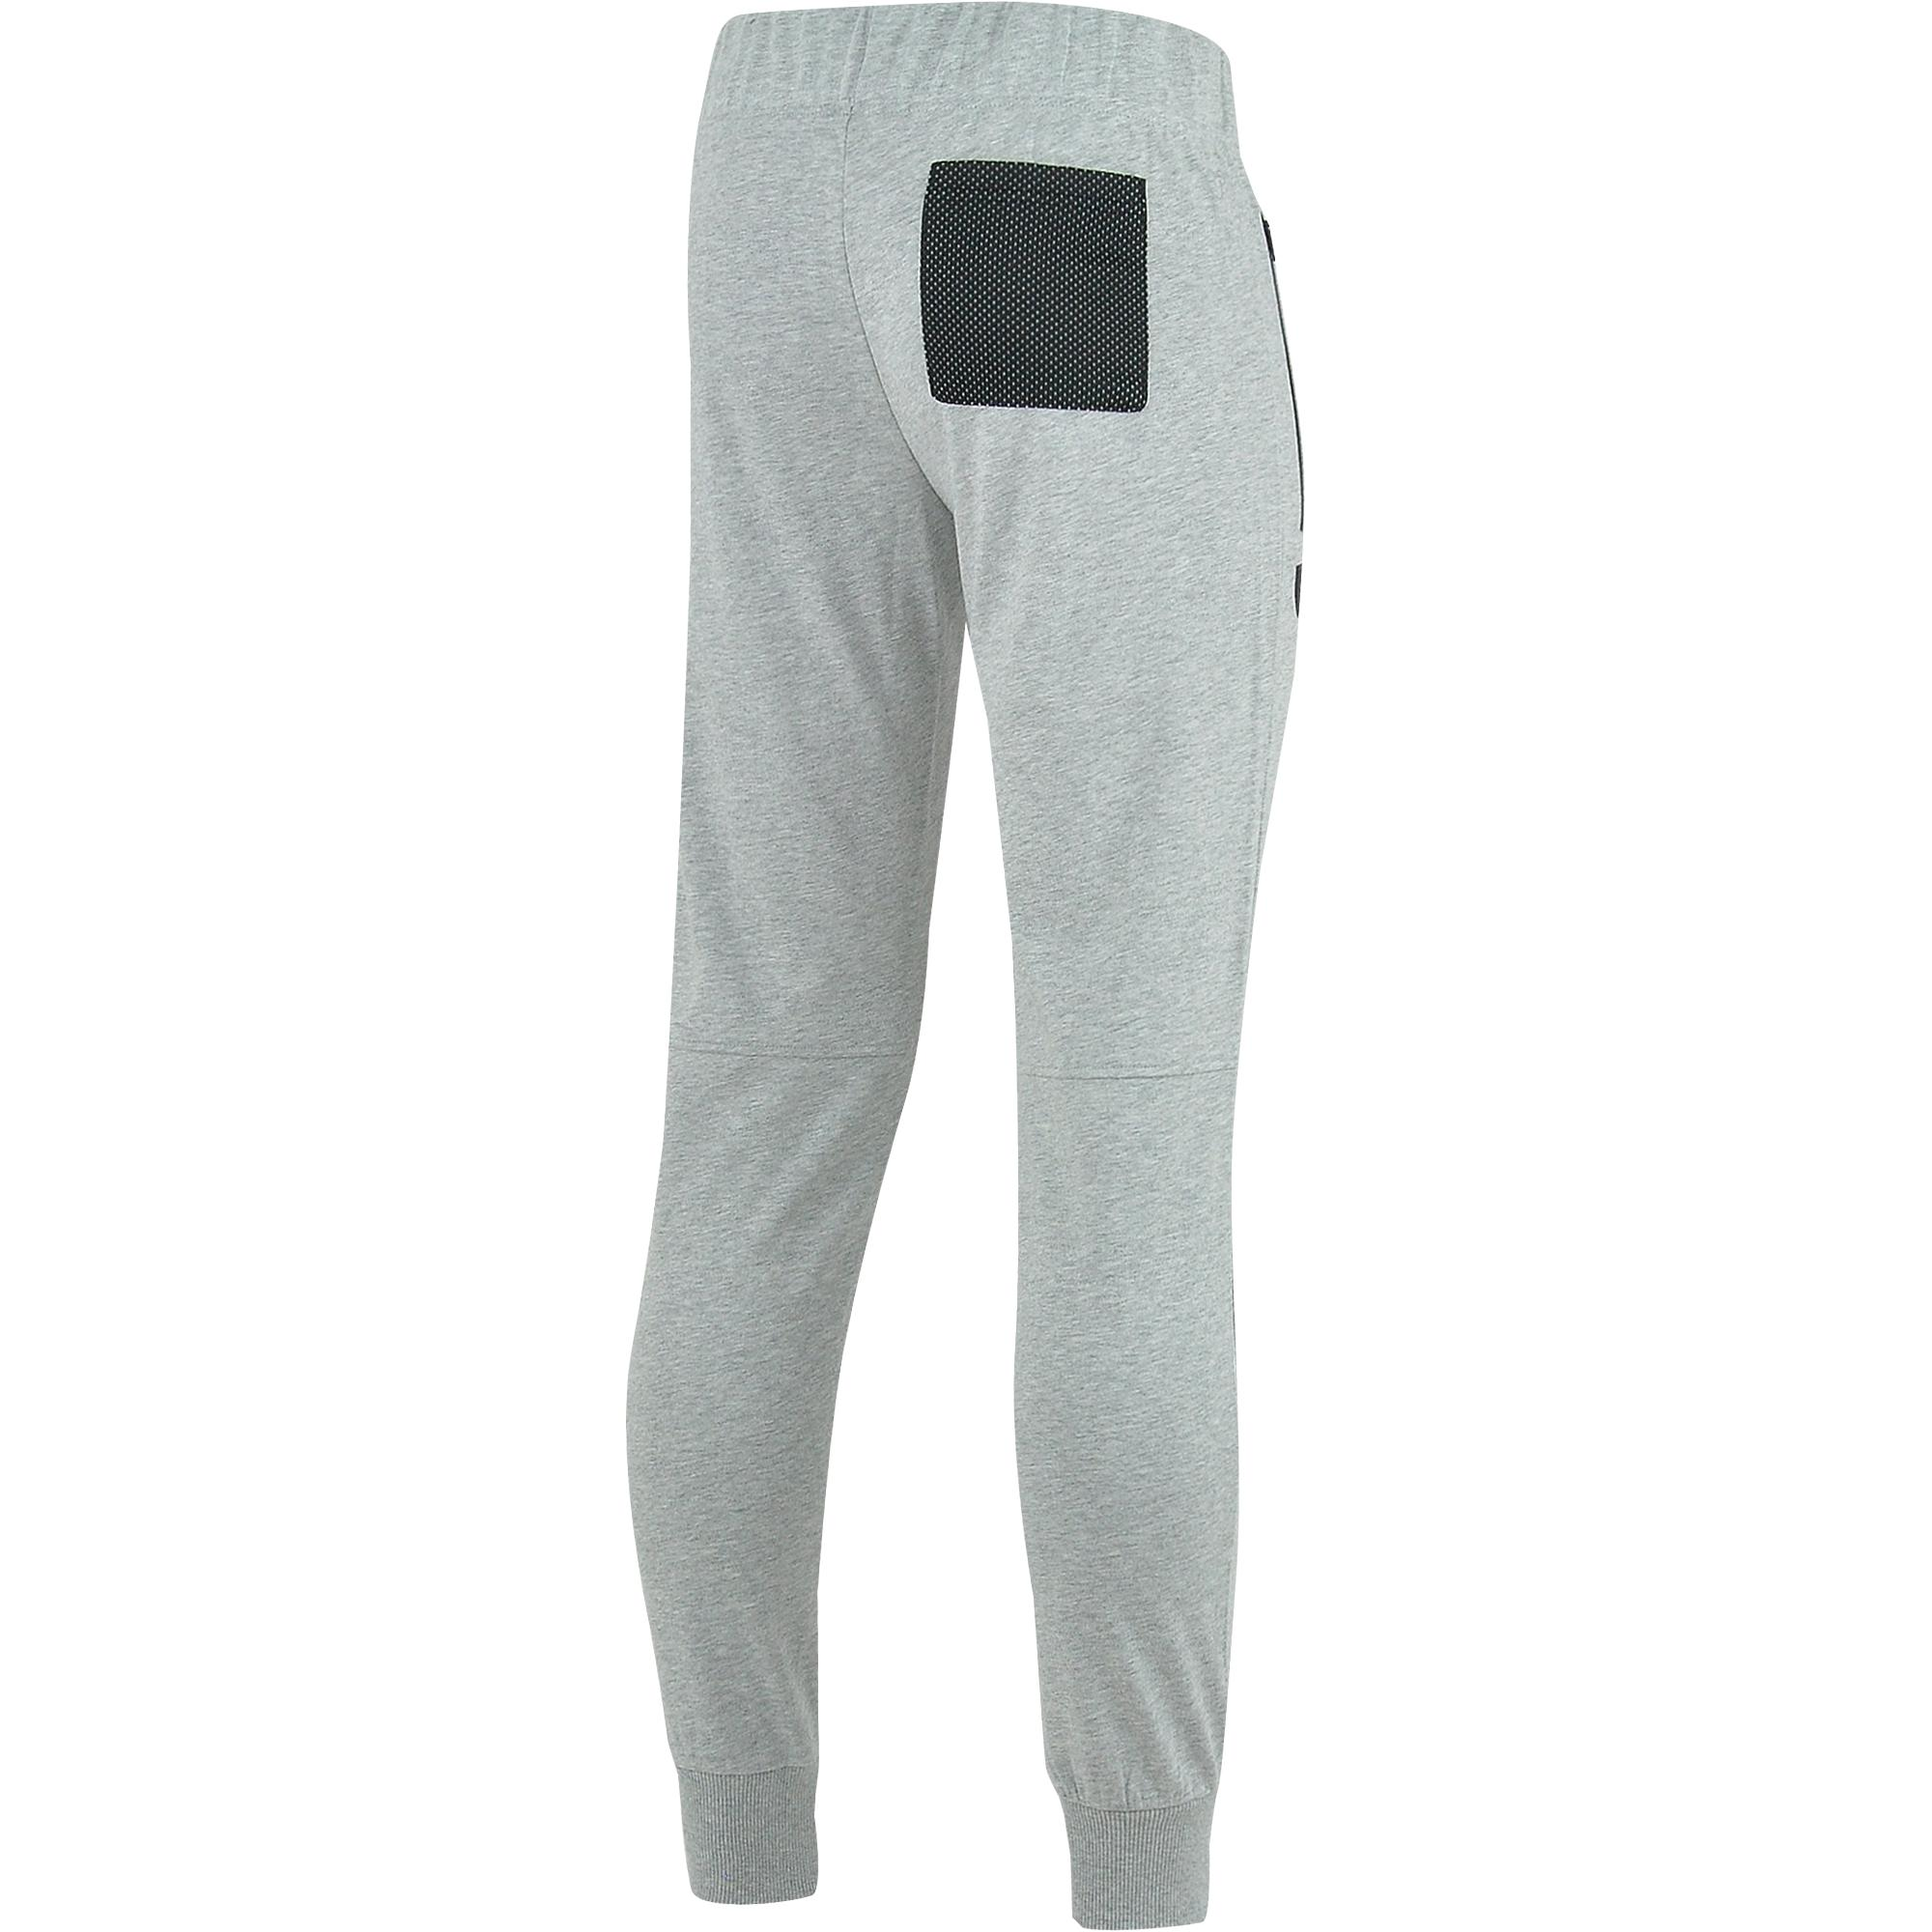 ... innovative design 6a311 cdd5c Puma Ferrari Sweat Pants Closed SS16  Erkek Tek Alt ... c8fe62421d7